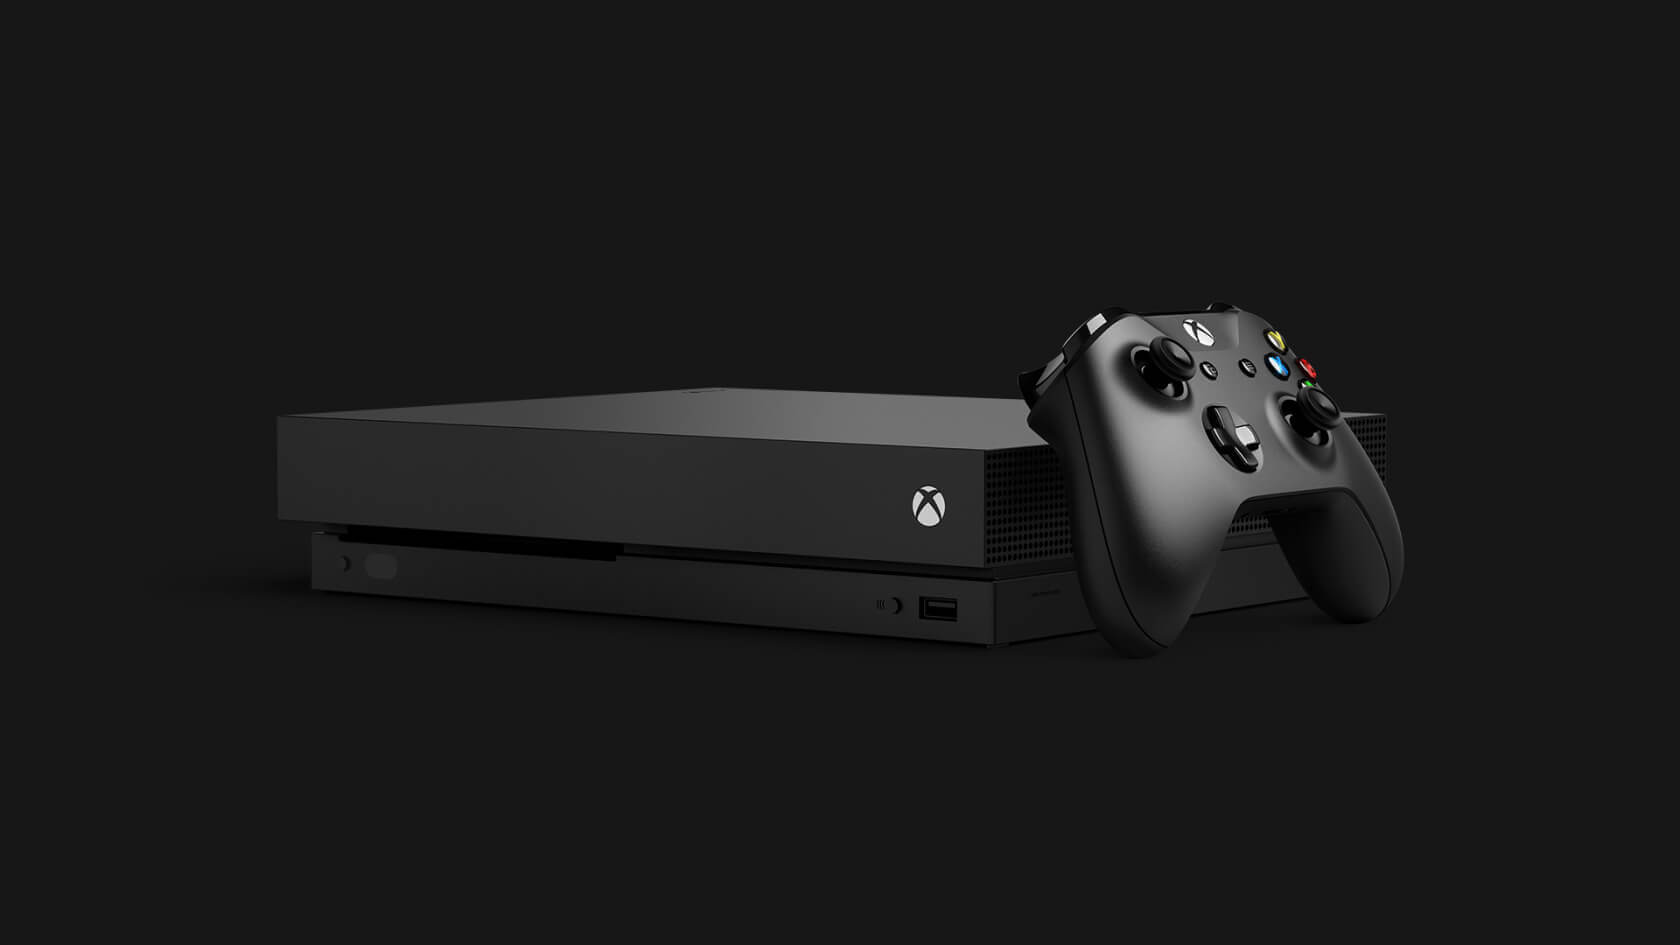 Xbox One X Is for Gaming Connoisseurs, Says Xbox Head